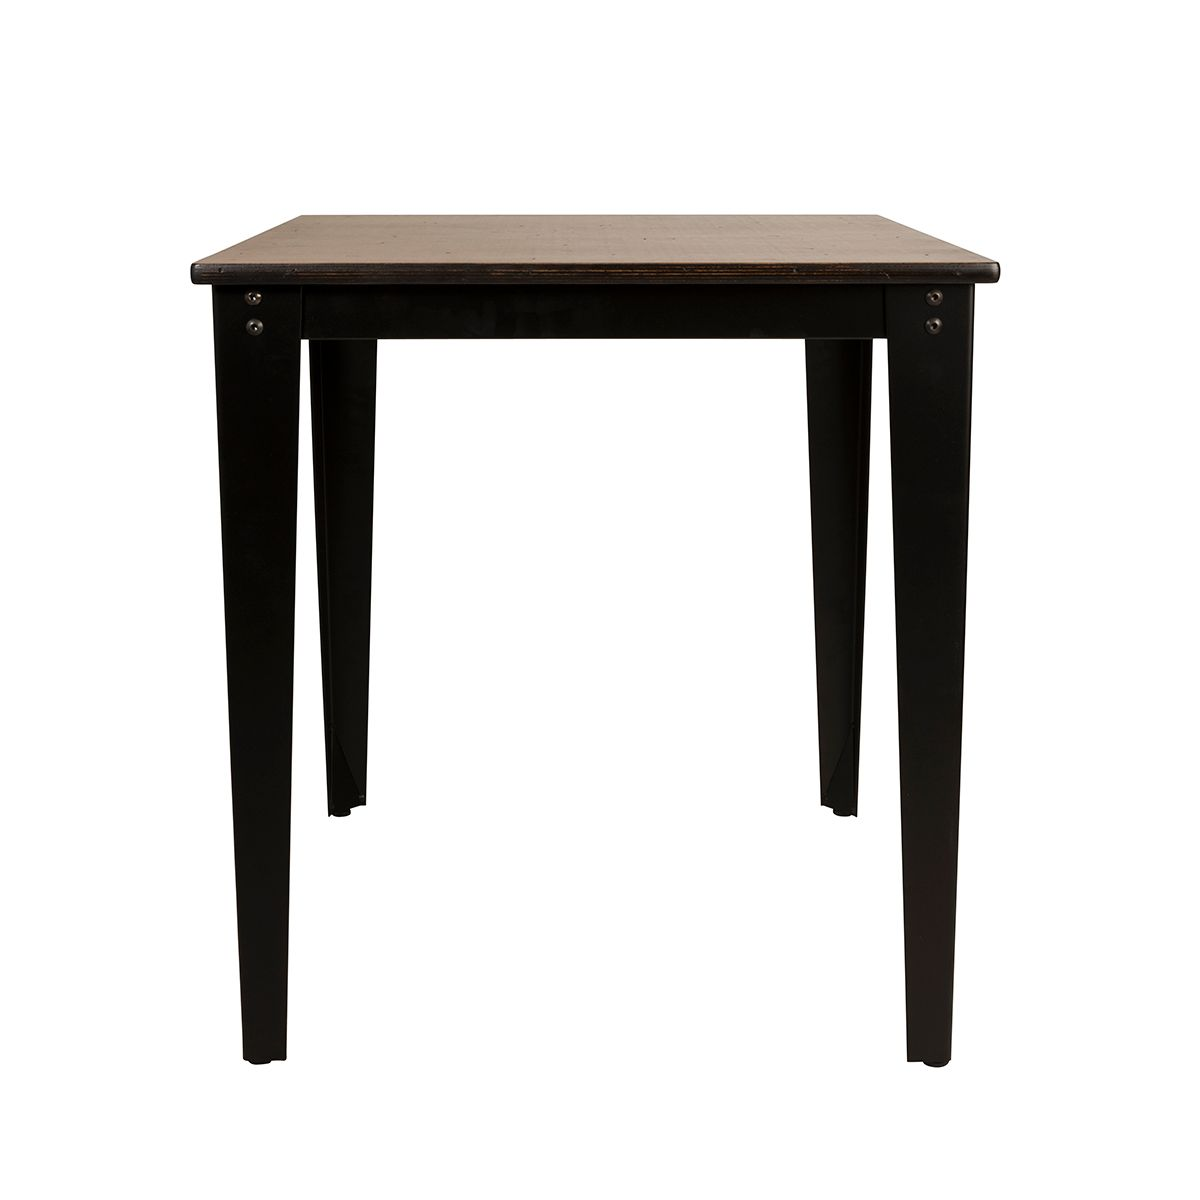 Table esprit factory en contreplaqué bouleau Scuola Dutchbone